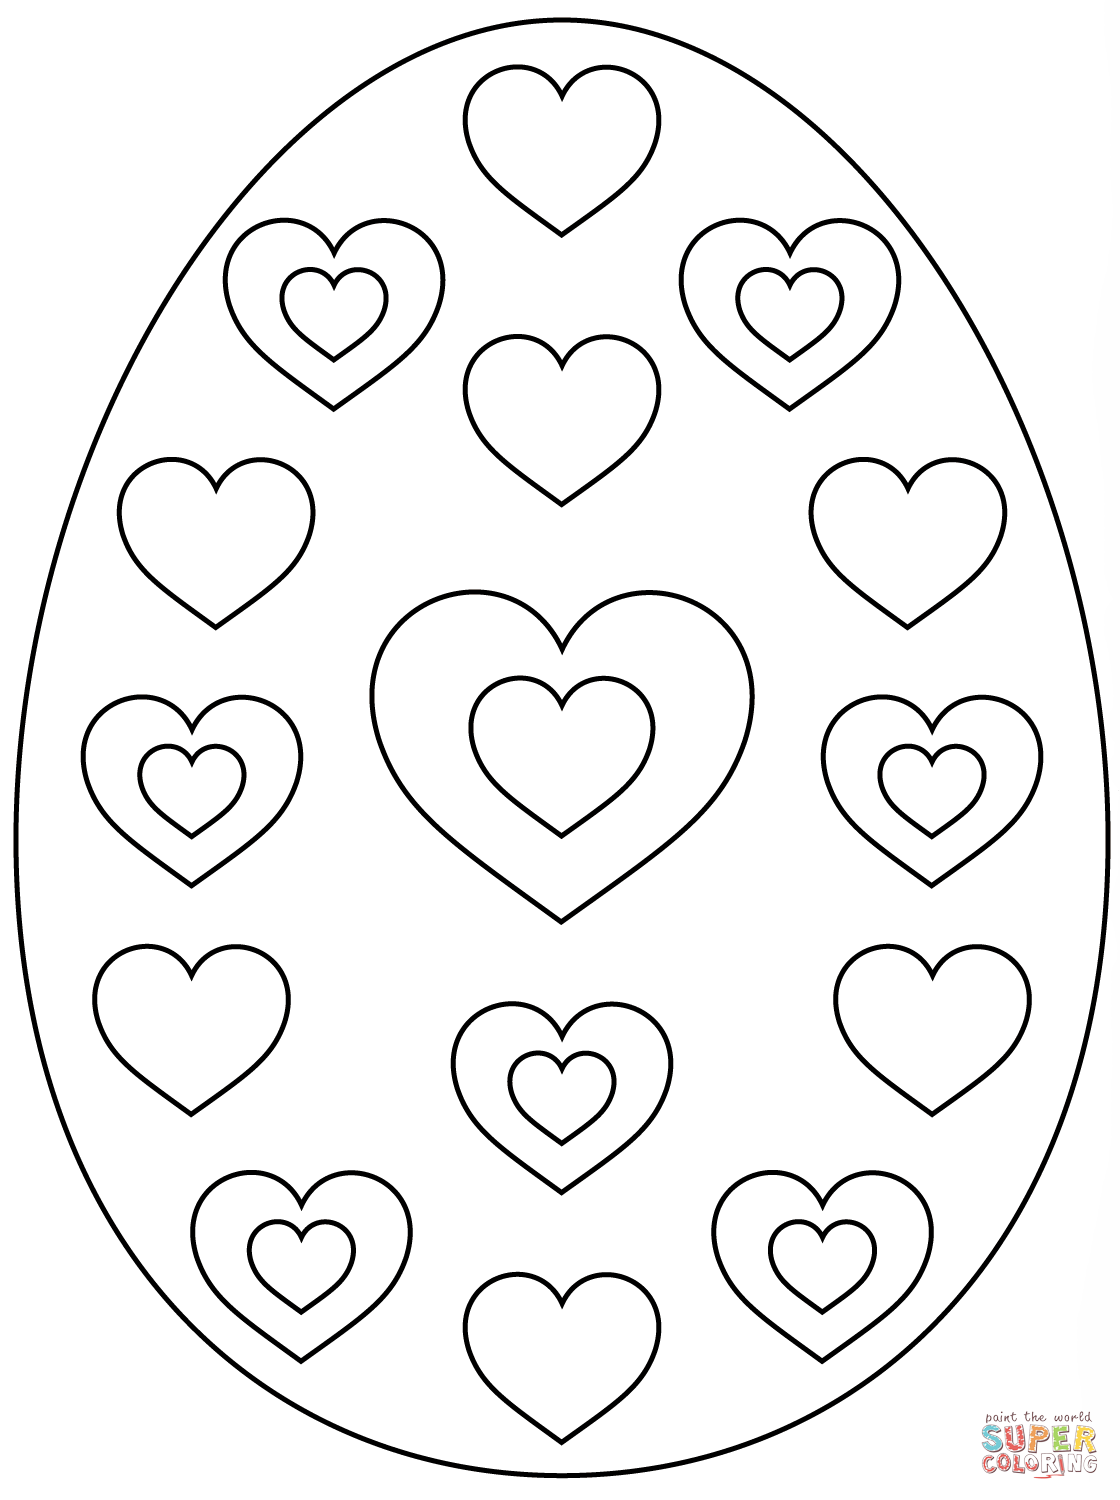 printable easter egg coloring pages easter egg with hearts coloring page free printable coloring printable egg easter pages